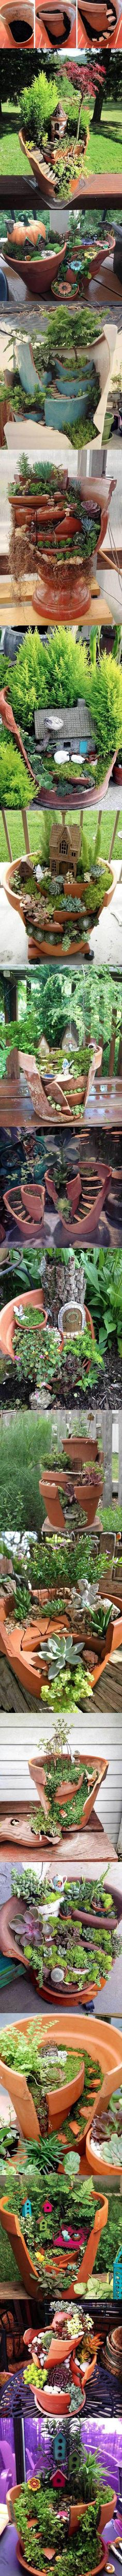 Don't Trash Broken Pottery, Instead Do This With It